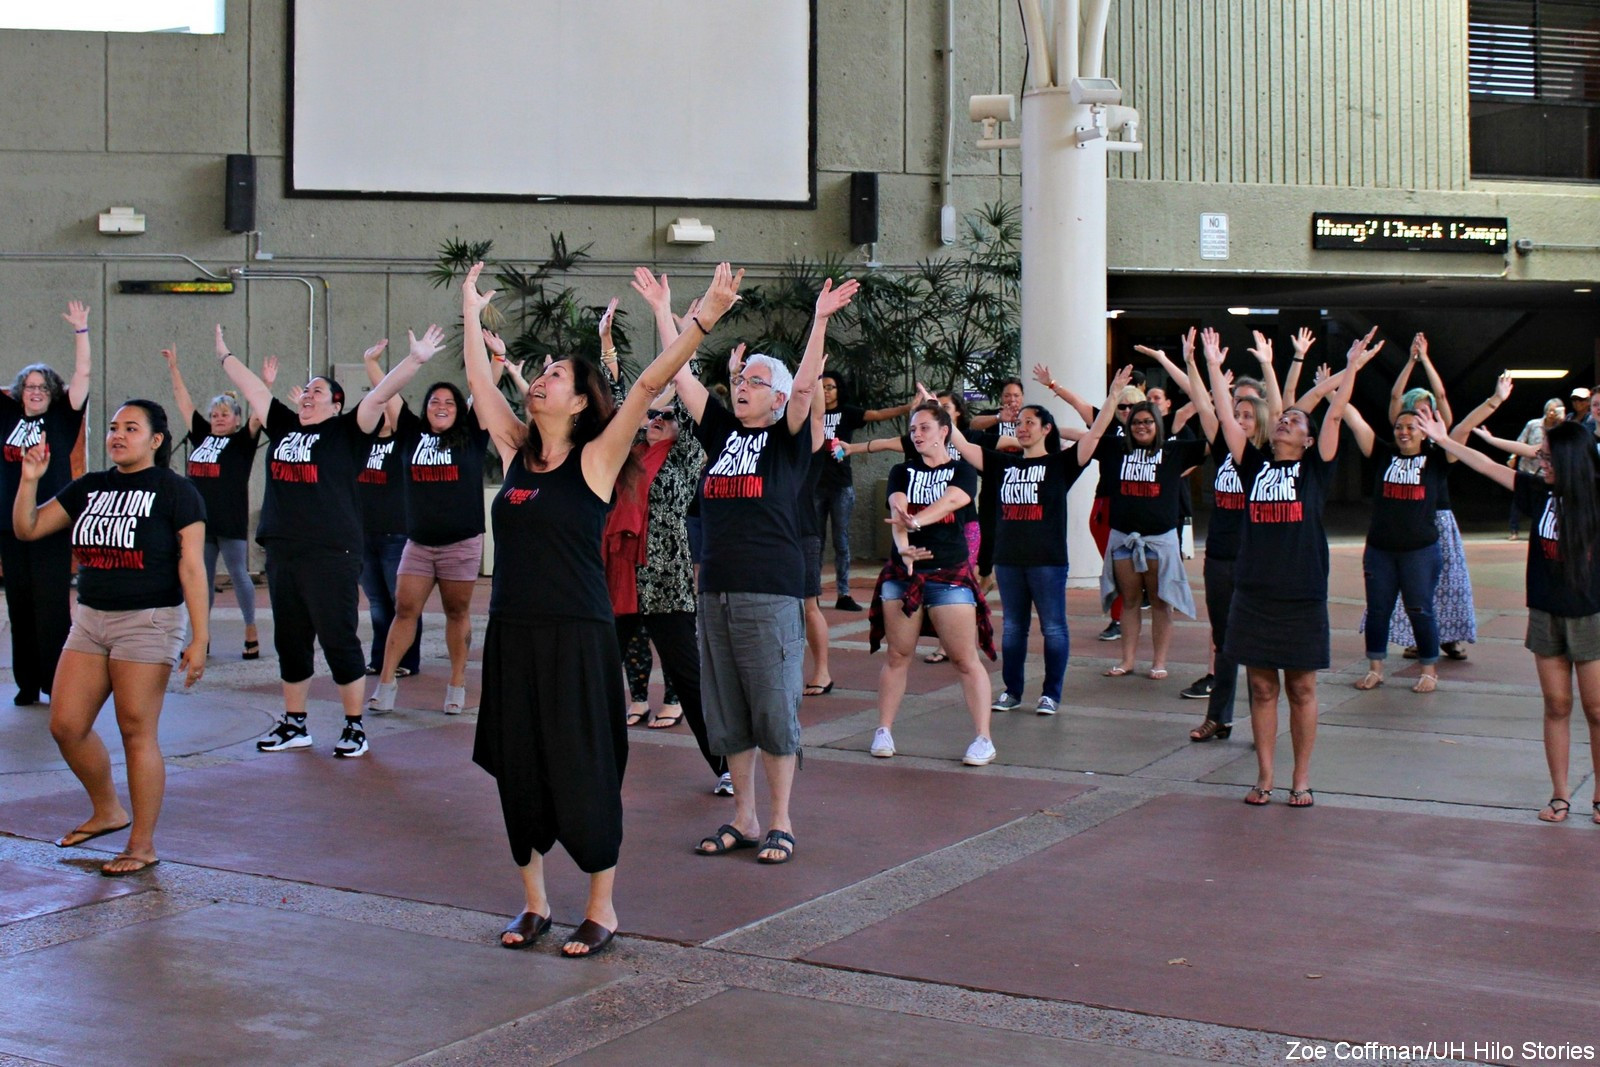 Flash Mob Dance at UH Hilo brings awareness to women's rights